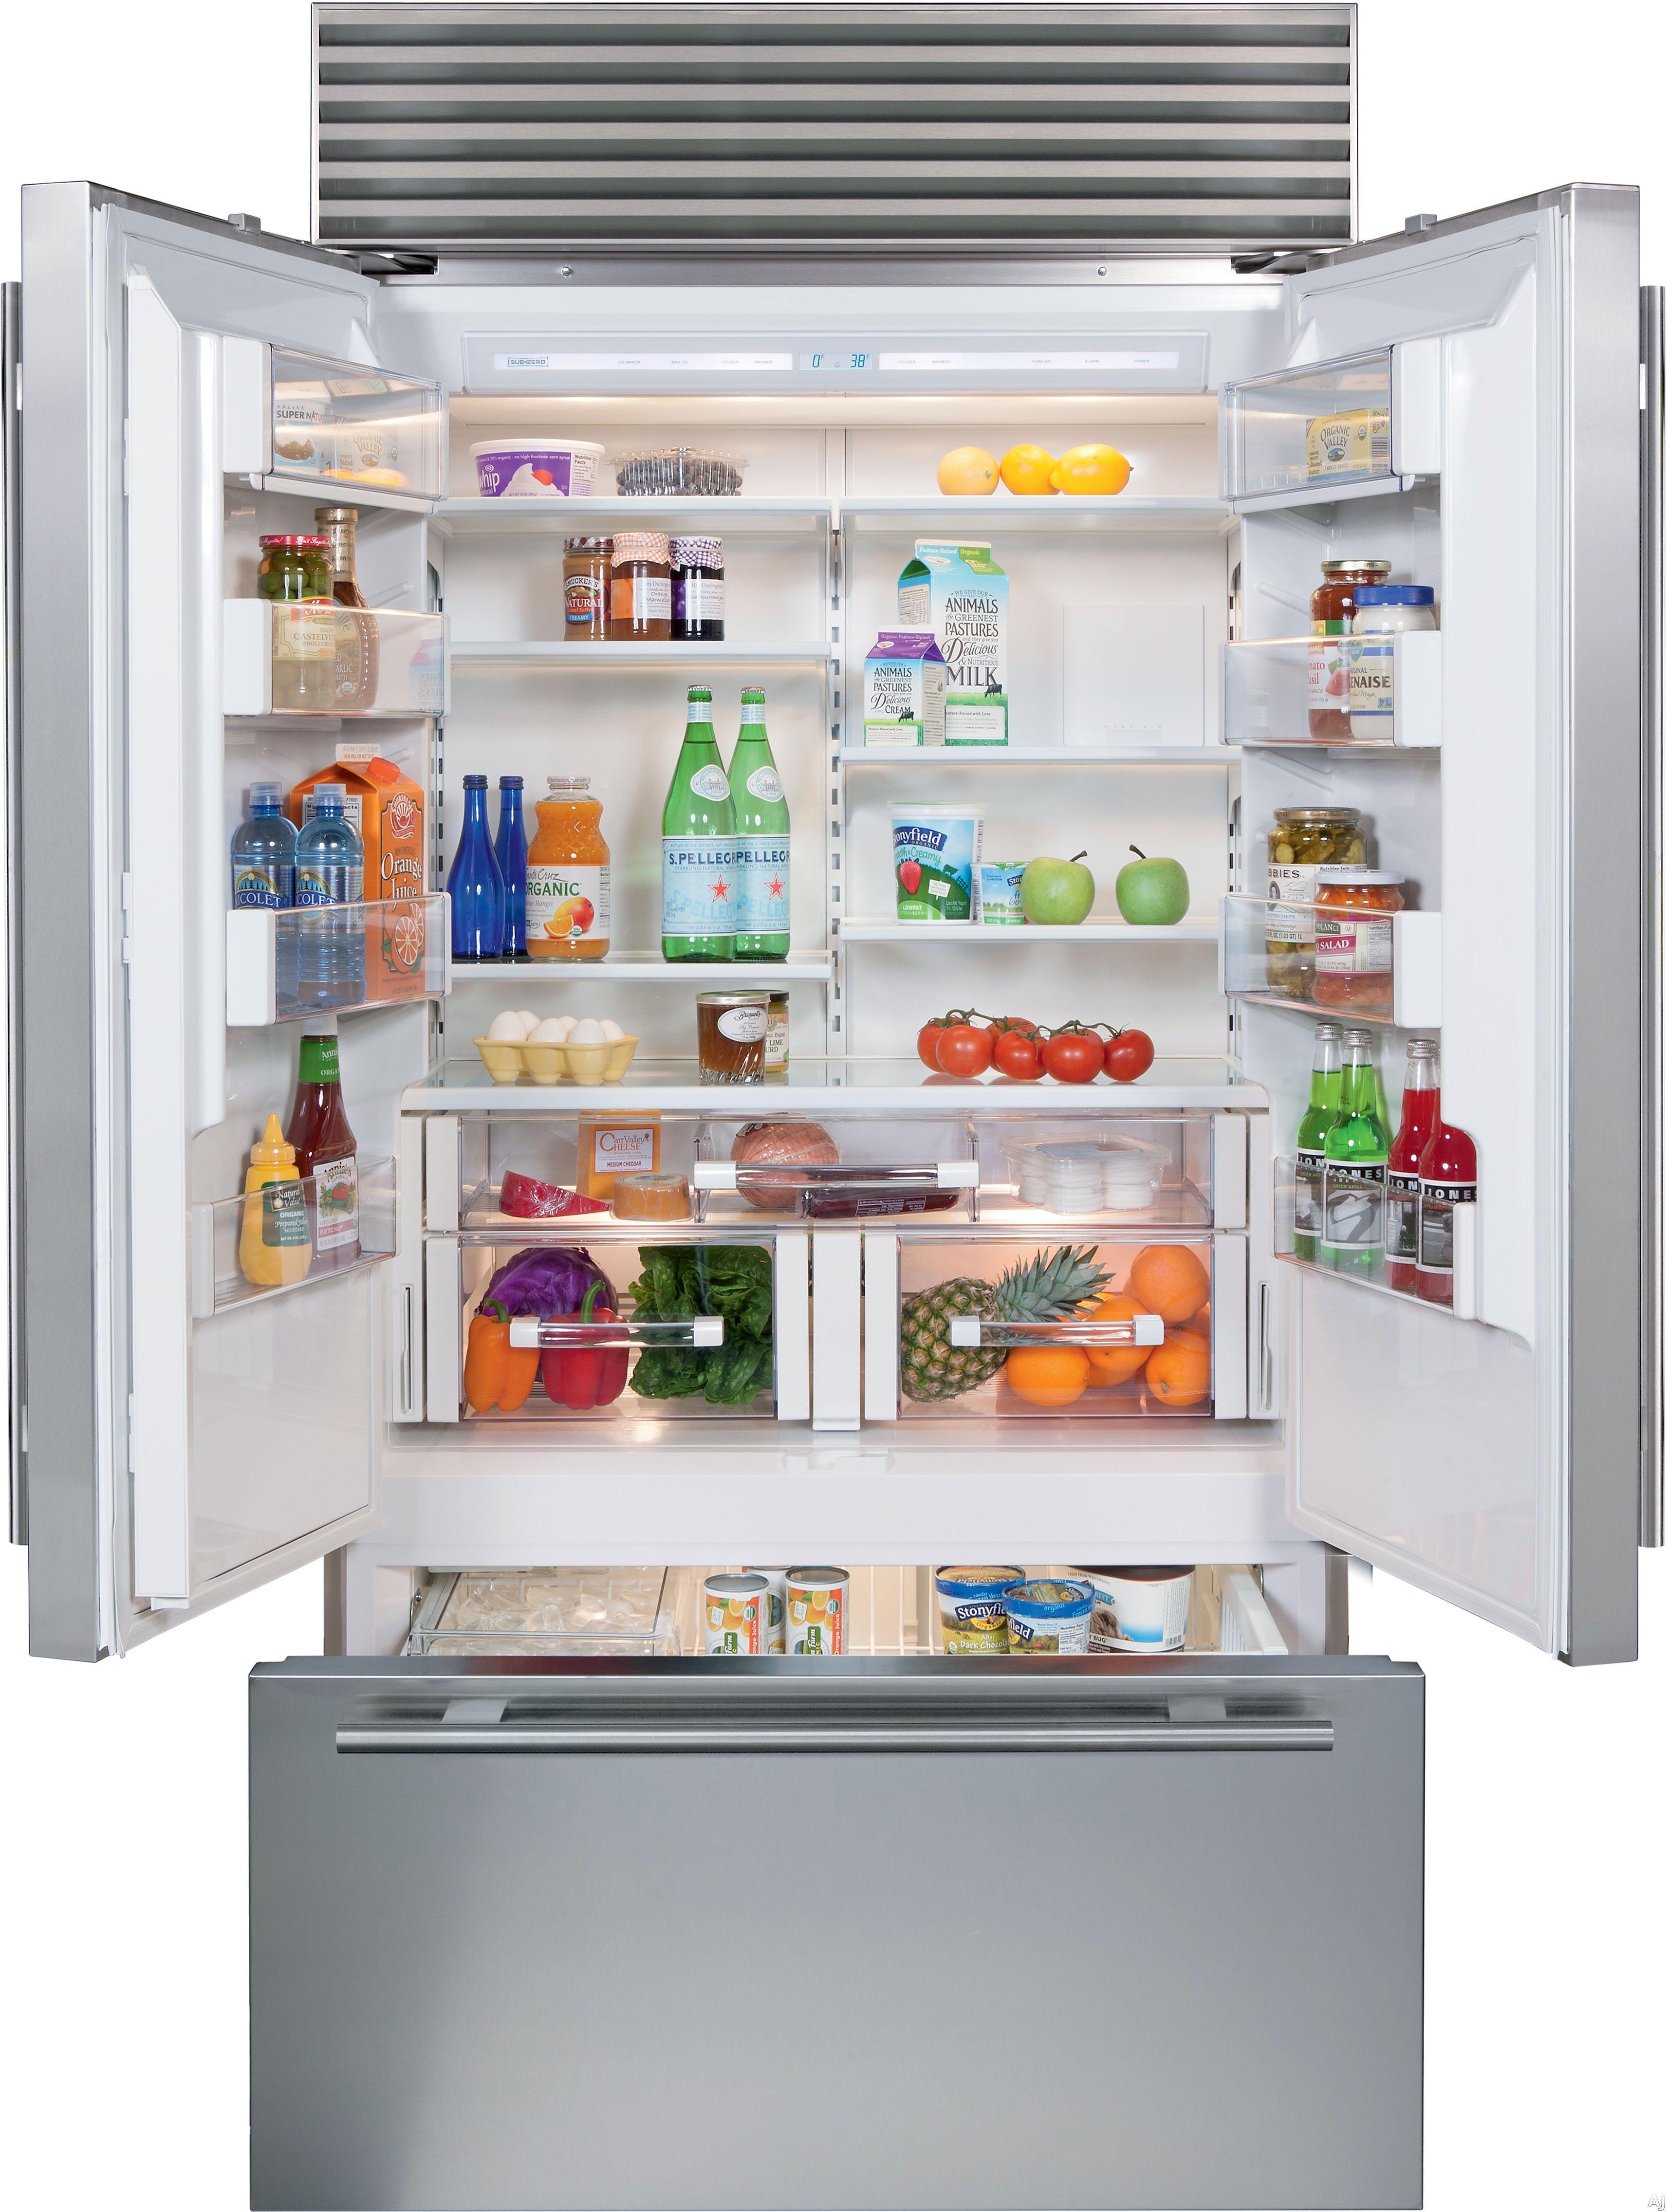 Sub Zero Bi42ufdidsph 42 Inch Built In French Door Refrigerator With 24 7 Cu Ft Capacity Adjustable Shelving Dual Refrigeration Air Purification Sabbath M French Door Refrigerator French Doors Fridge French Door